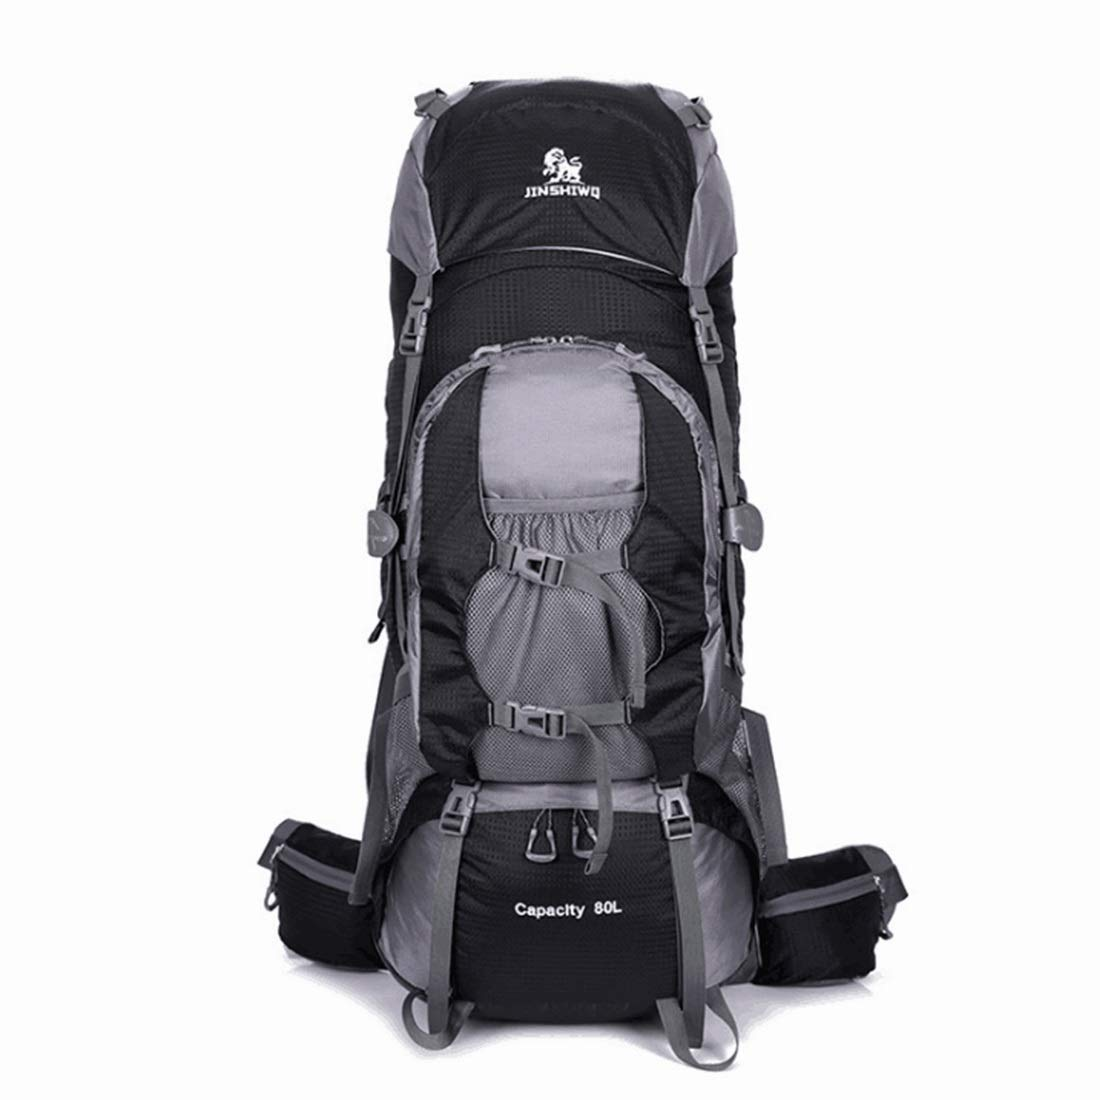 Color : Black CTARCROW Hiking Backpack Travel Daypack Waterproof with Rain Cover for Climbing Camping